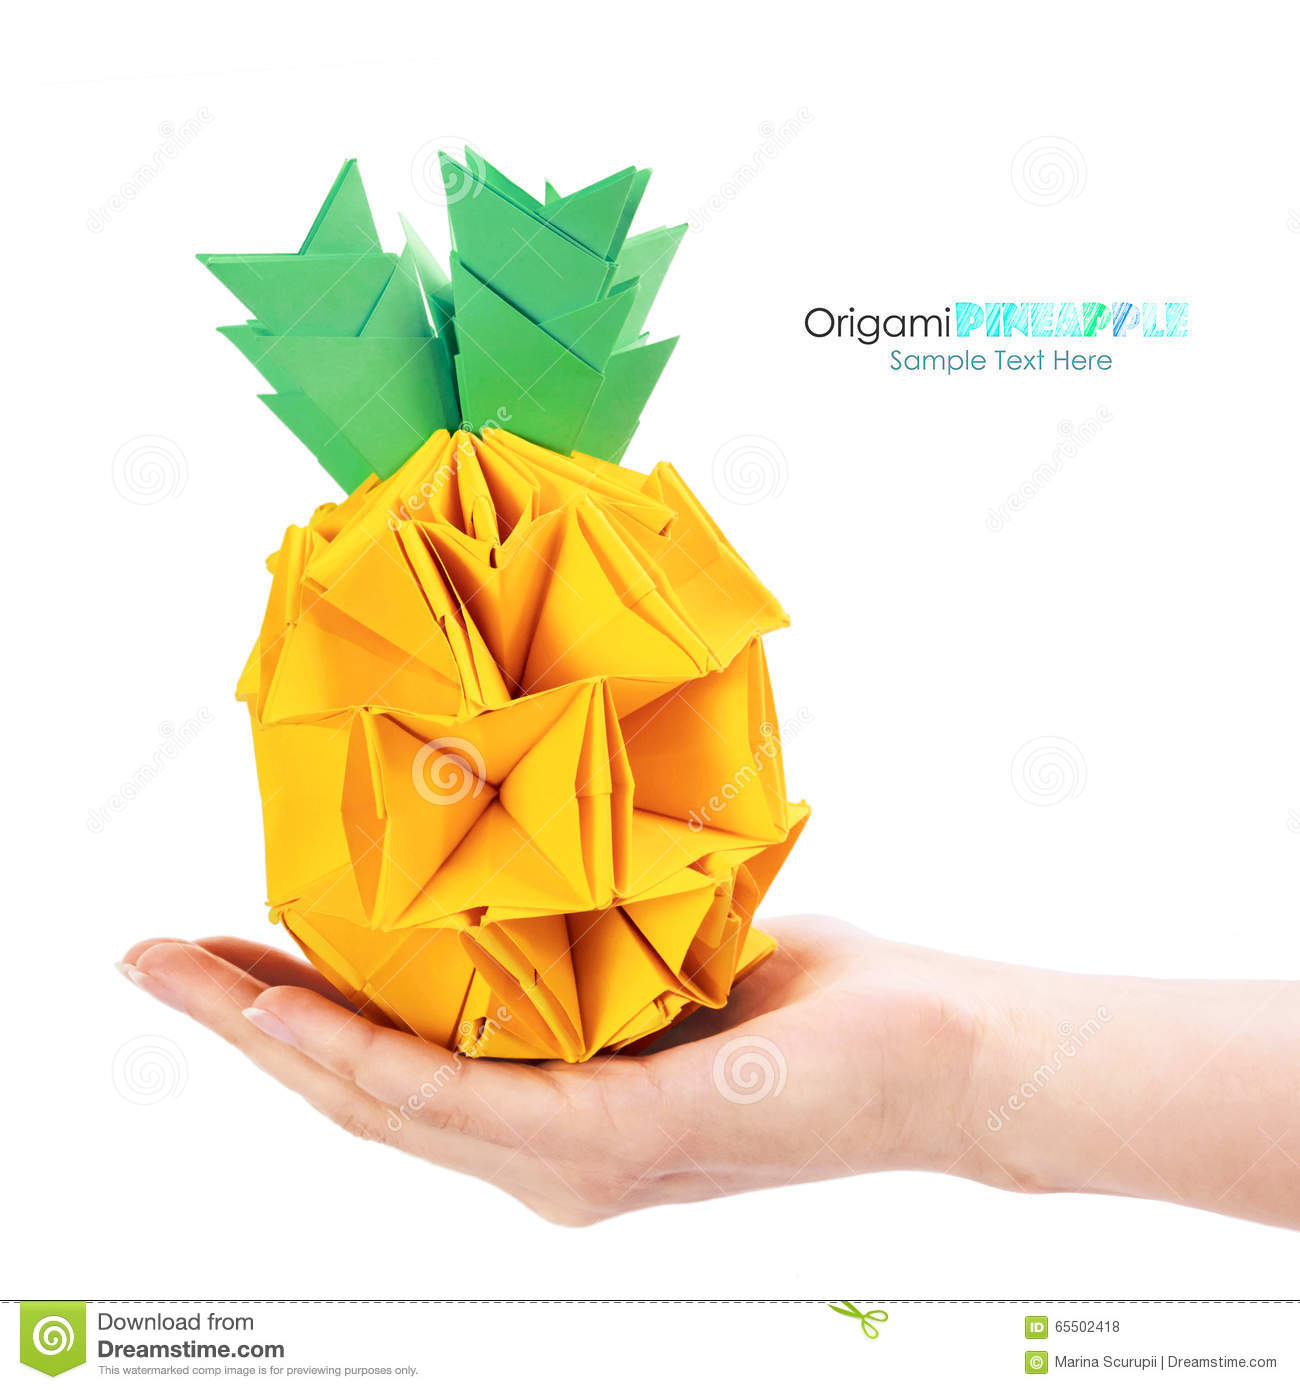 Origami Pineapple On Hand Stock Photo Image Of Cartoon 65502418